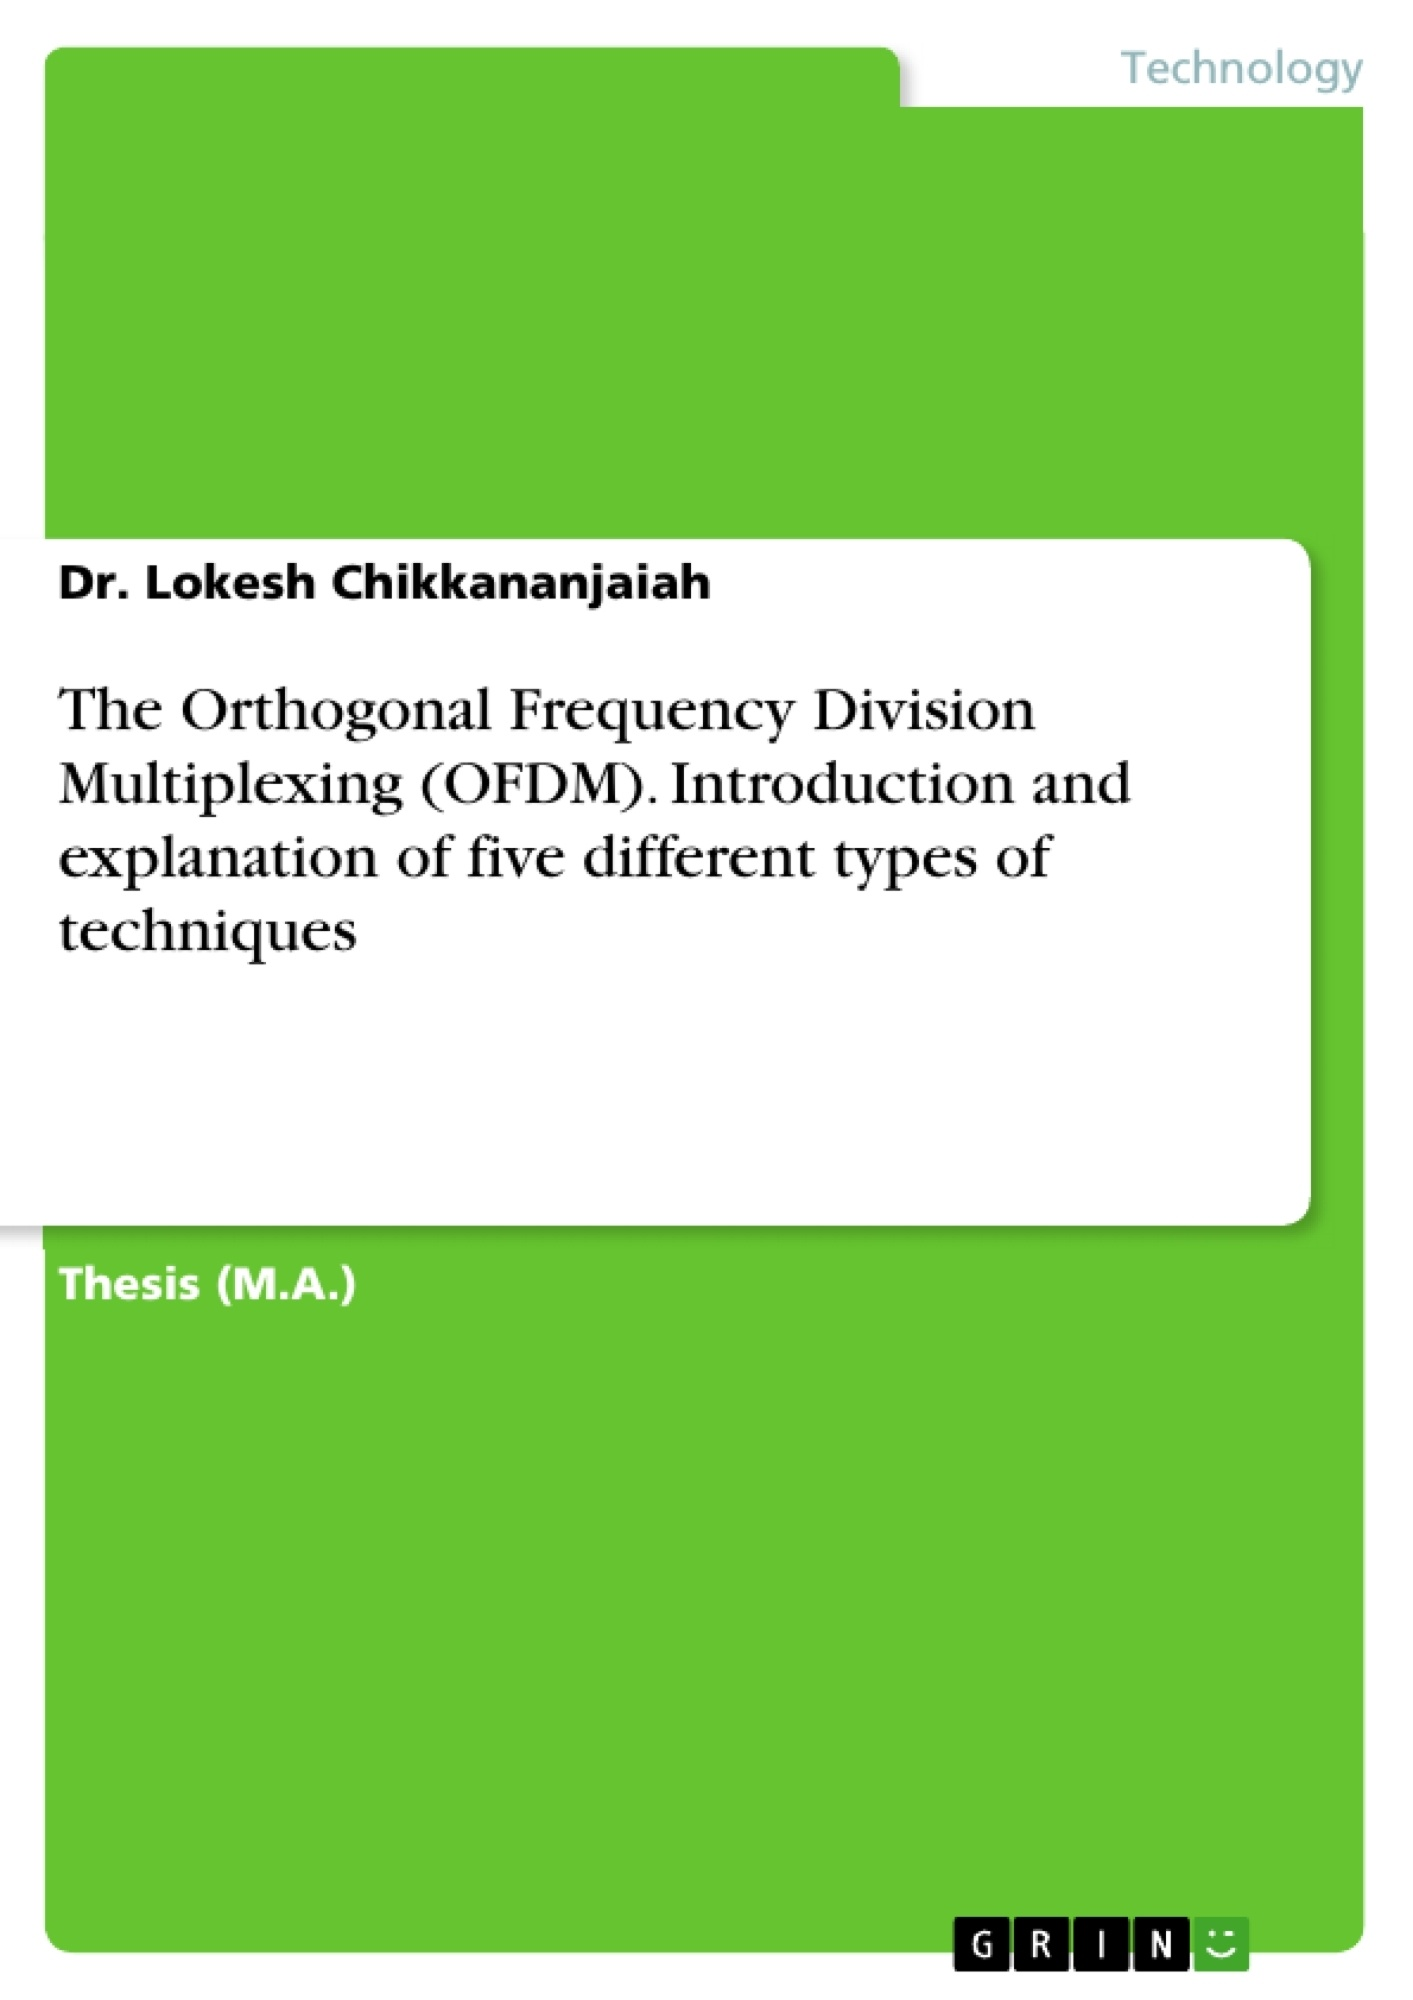 Title: The Orthogonal Frequency Division Multiplexing (OFDM). Introduction and explanation of five different types of techniques